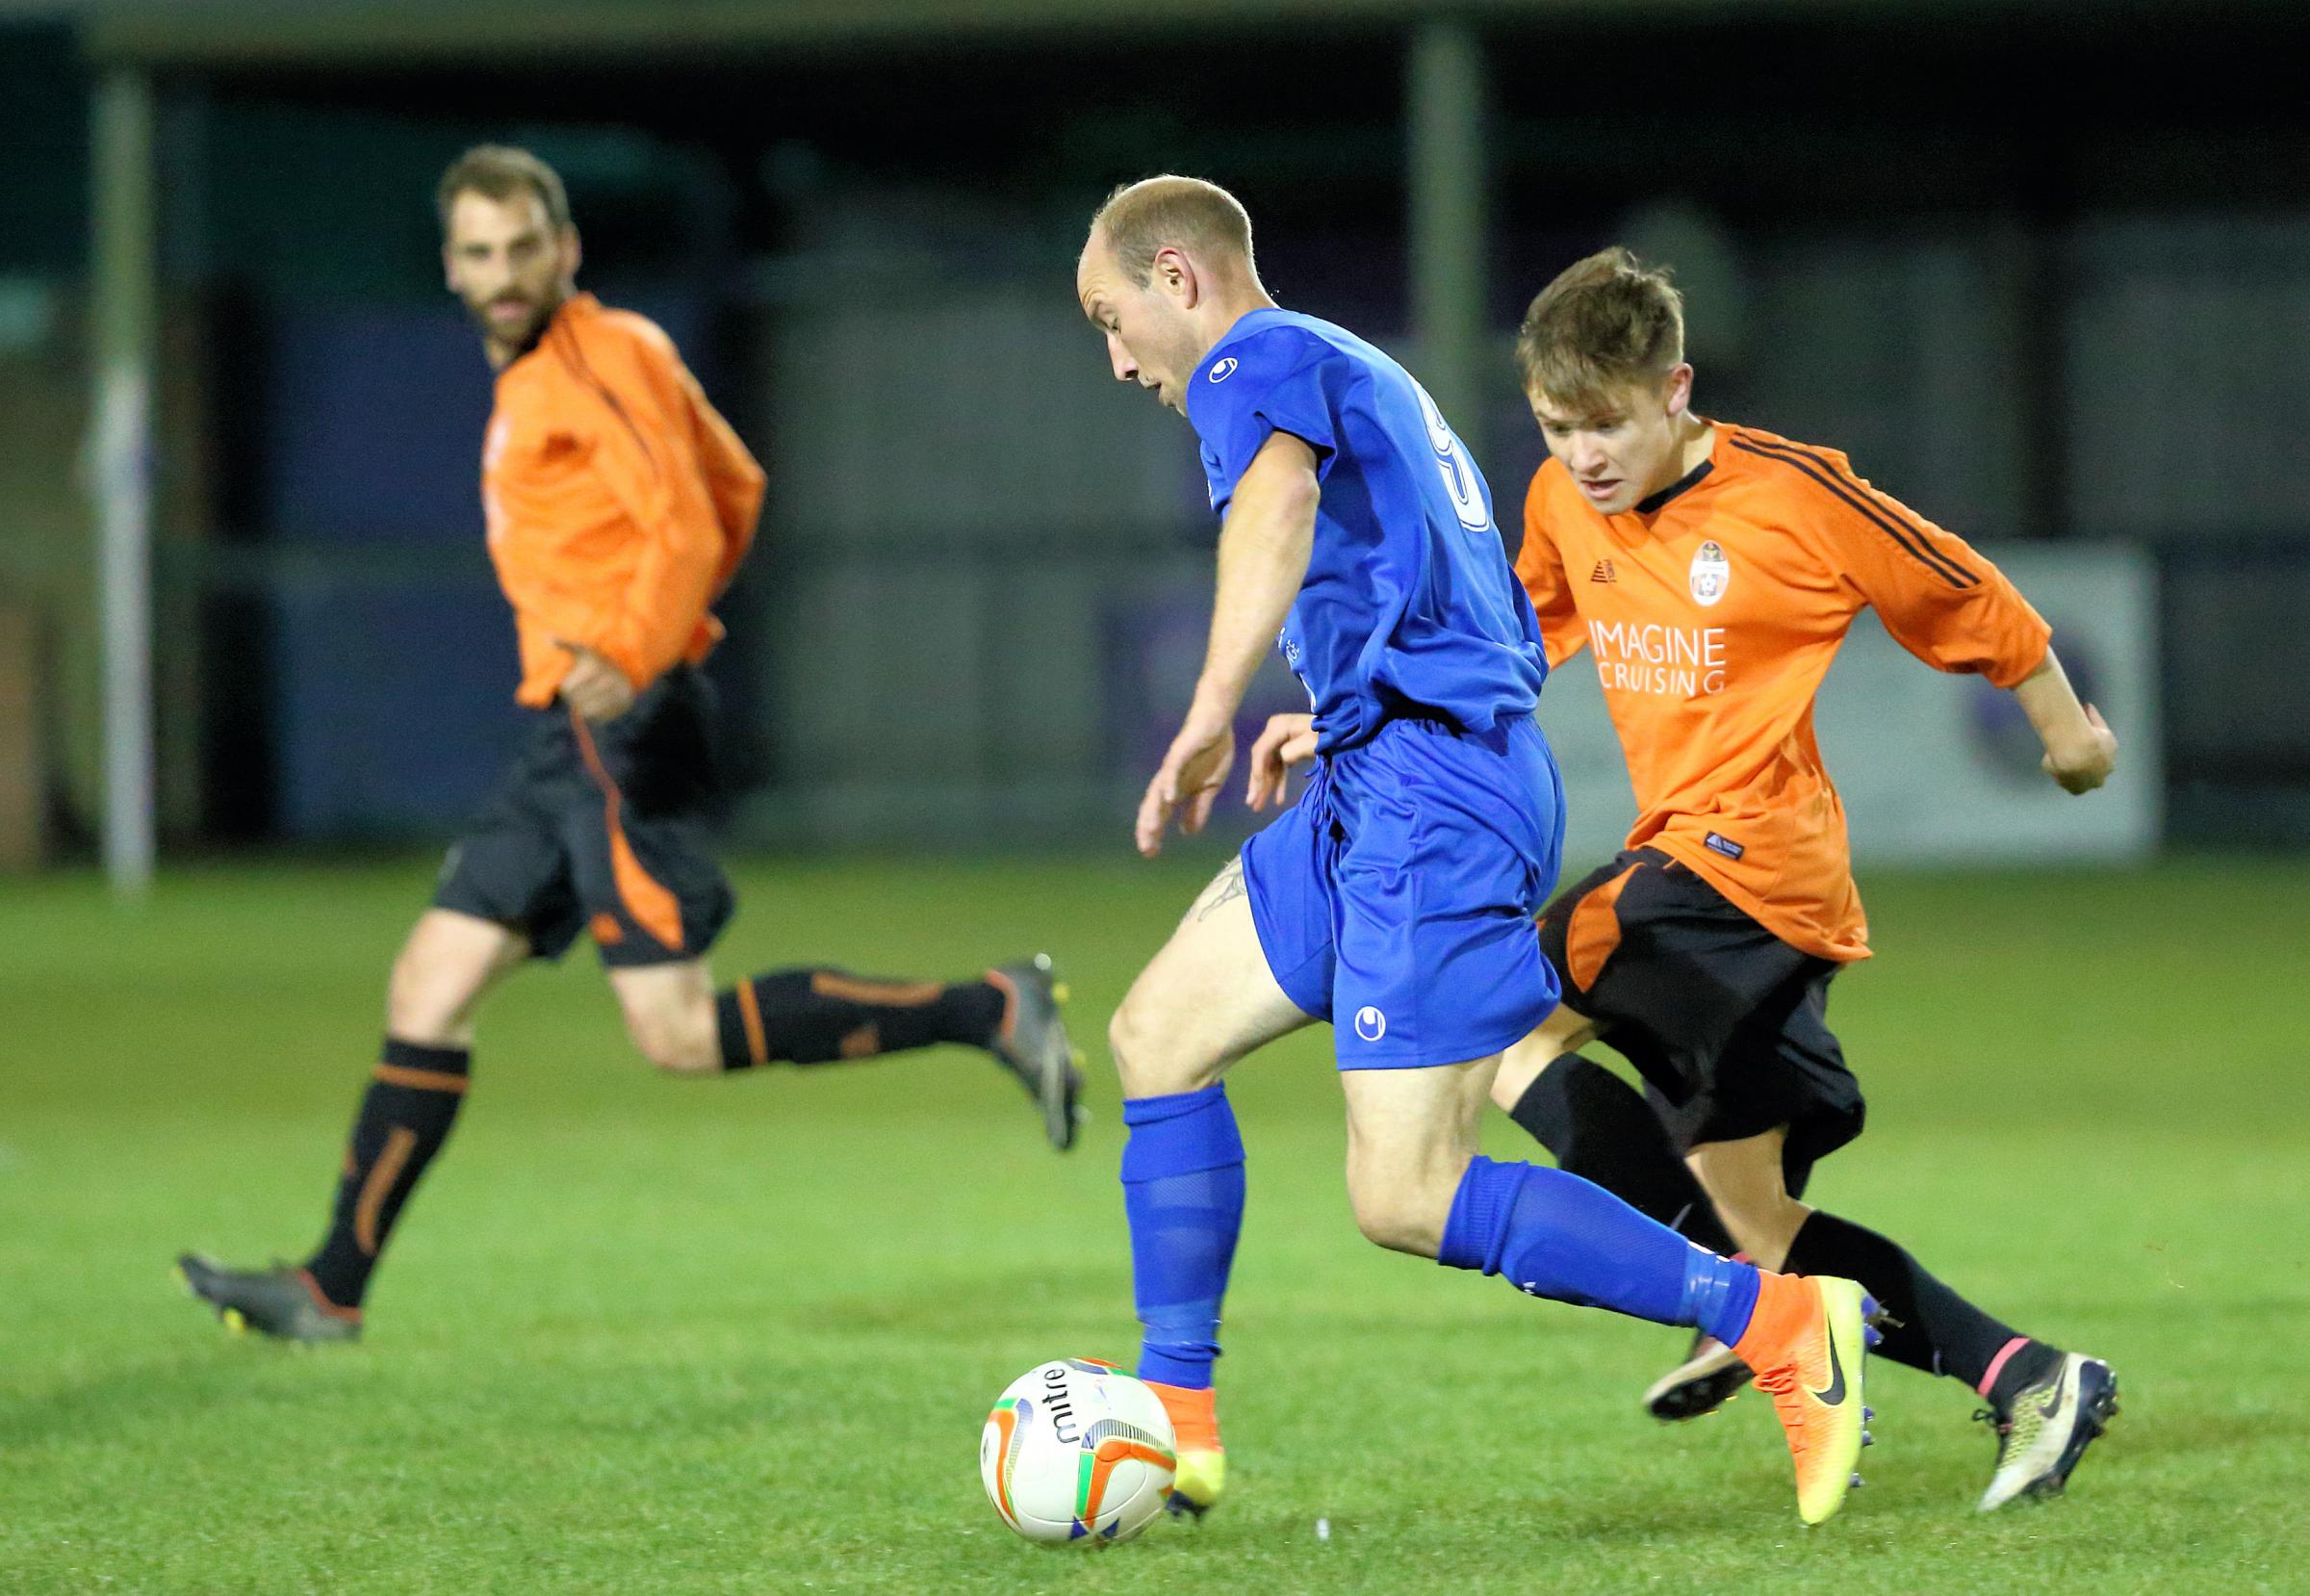 Chippenham Town's David Pratt (in blue) gets on the ball during last night's county cup clash with Wroughton